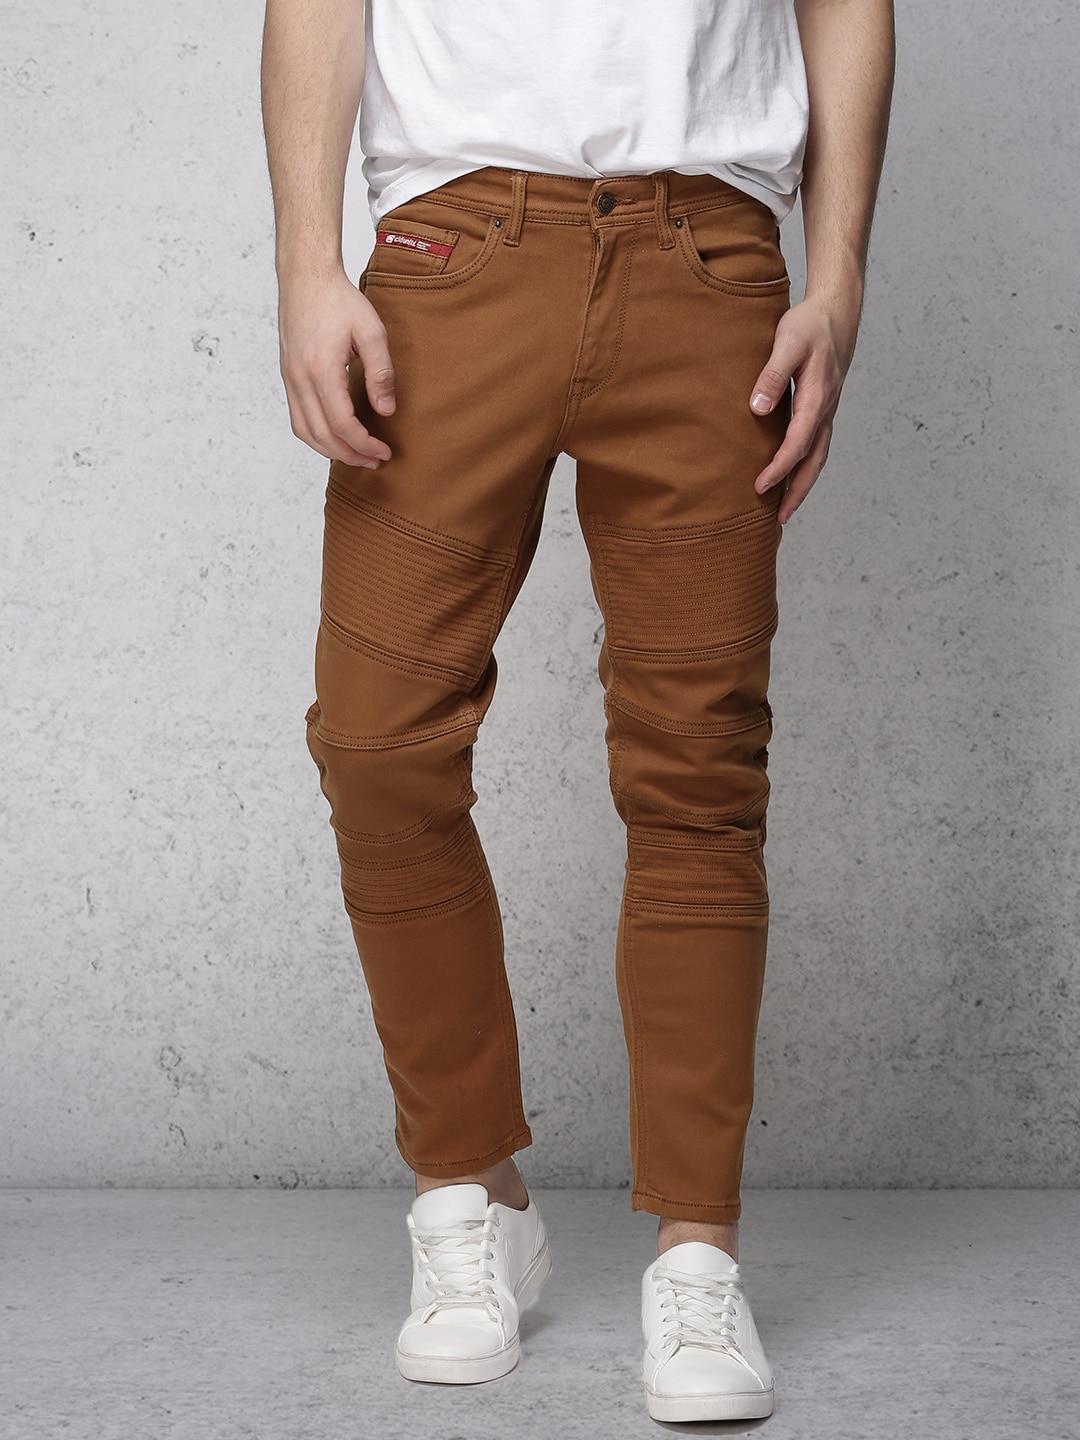 Ecko Unltd Men Rust Brown Slim Tapered Fit Mid-Rise Clean Look Stretchable Jeans image